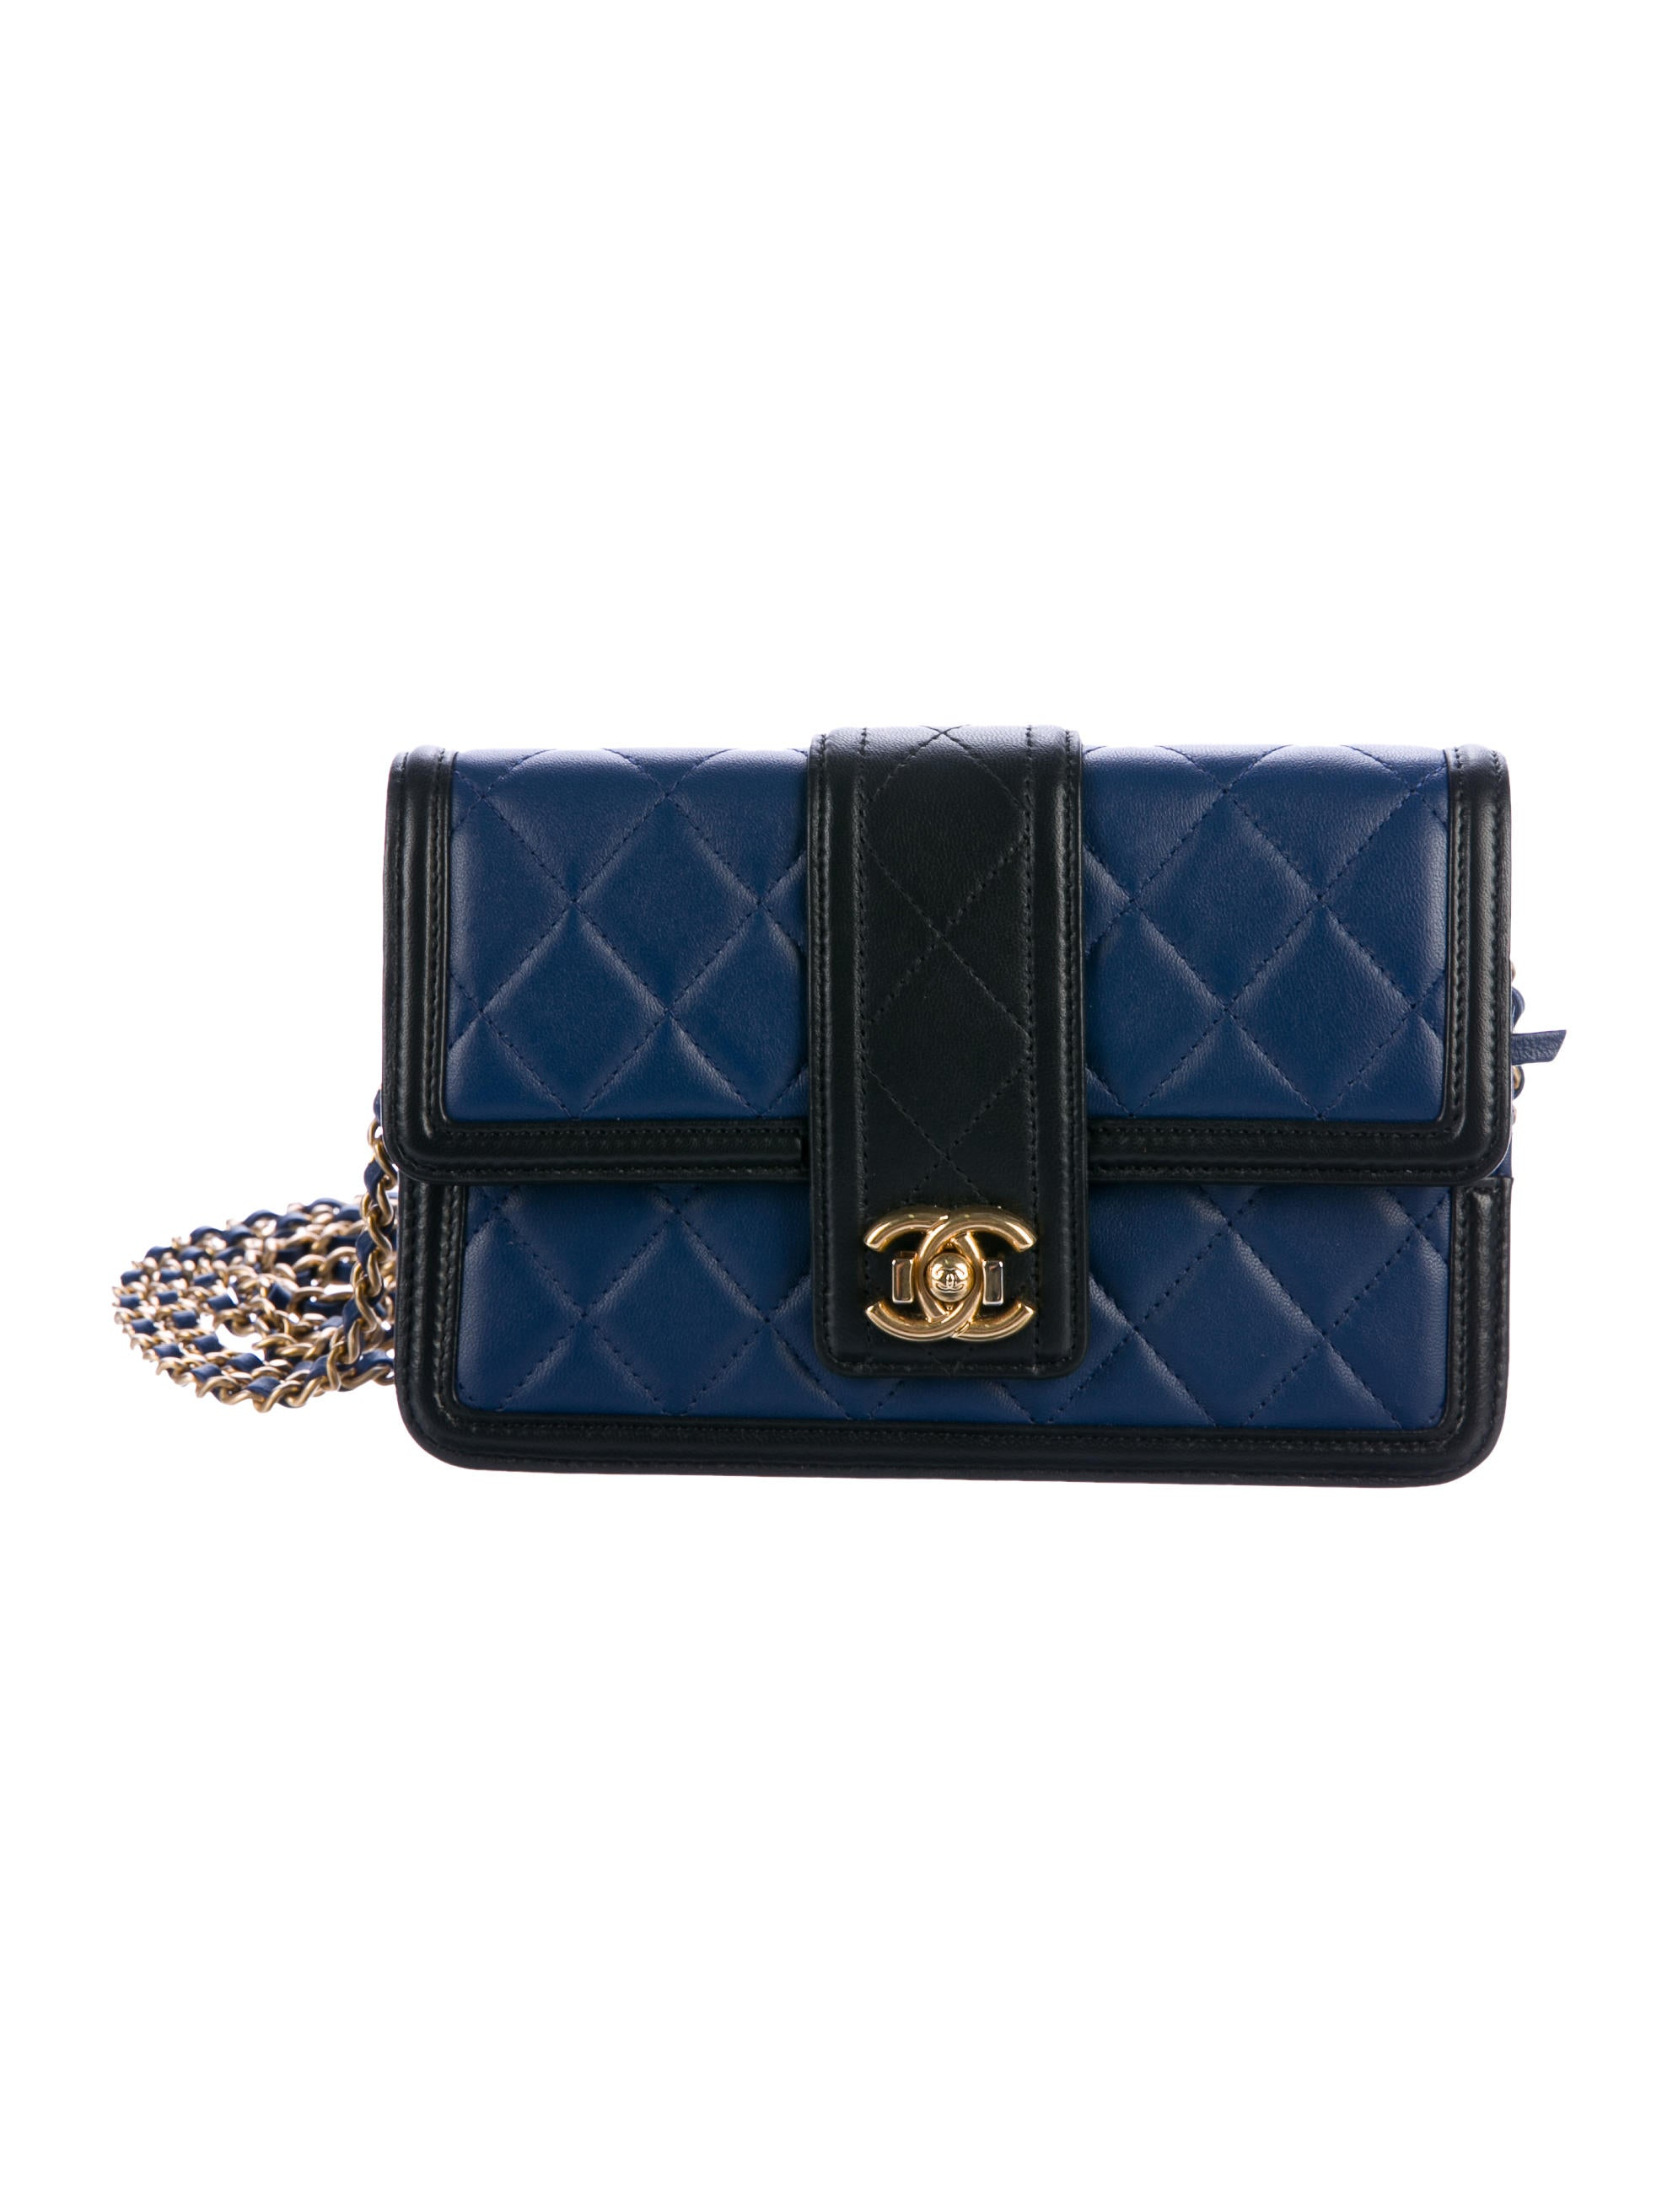 22bee4986ef3 2016 Chanel Wallet On Chain | Stanford Center for Opportunity Policy ...